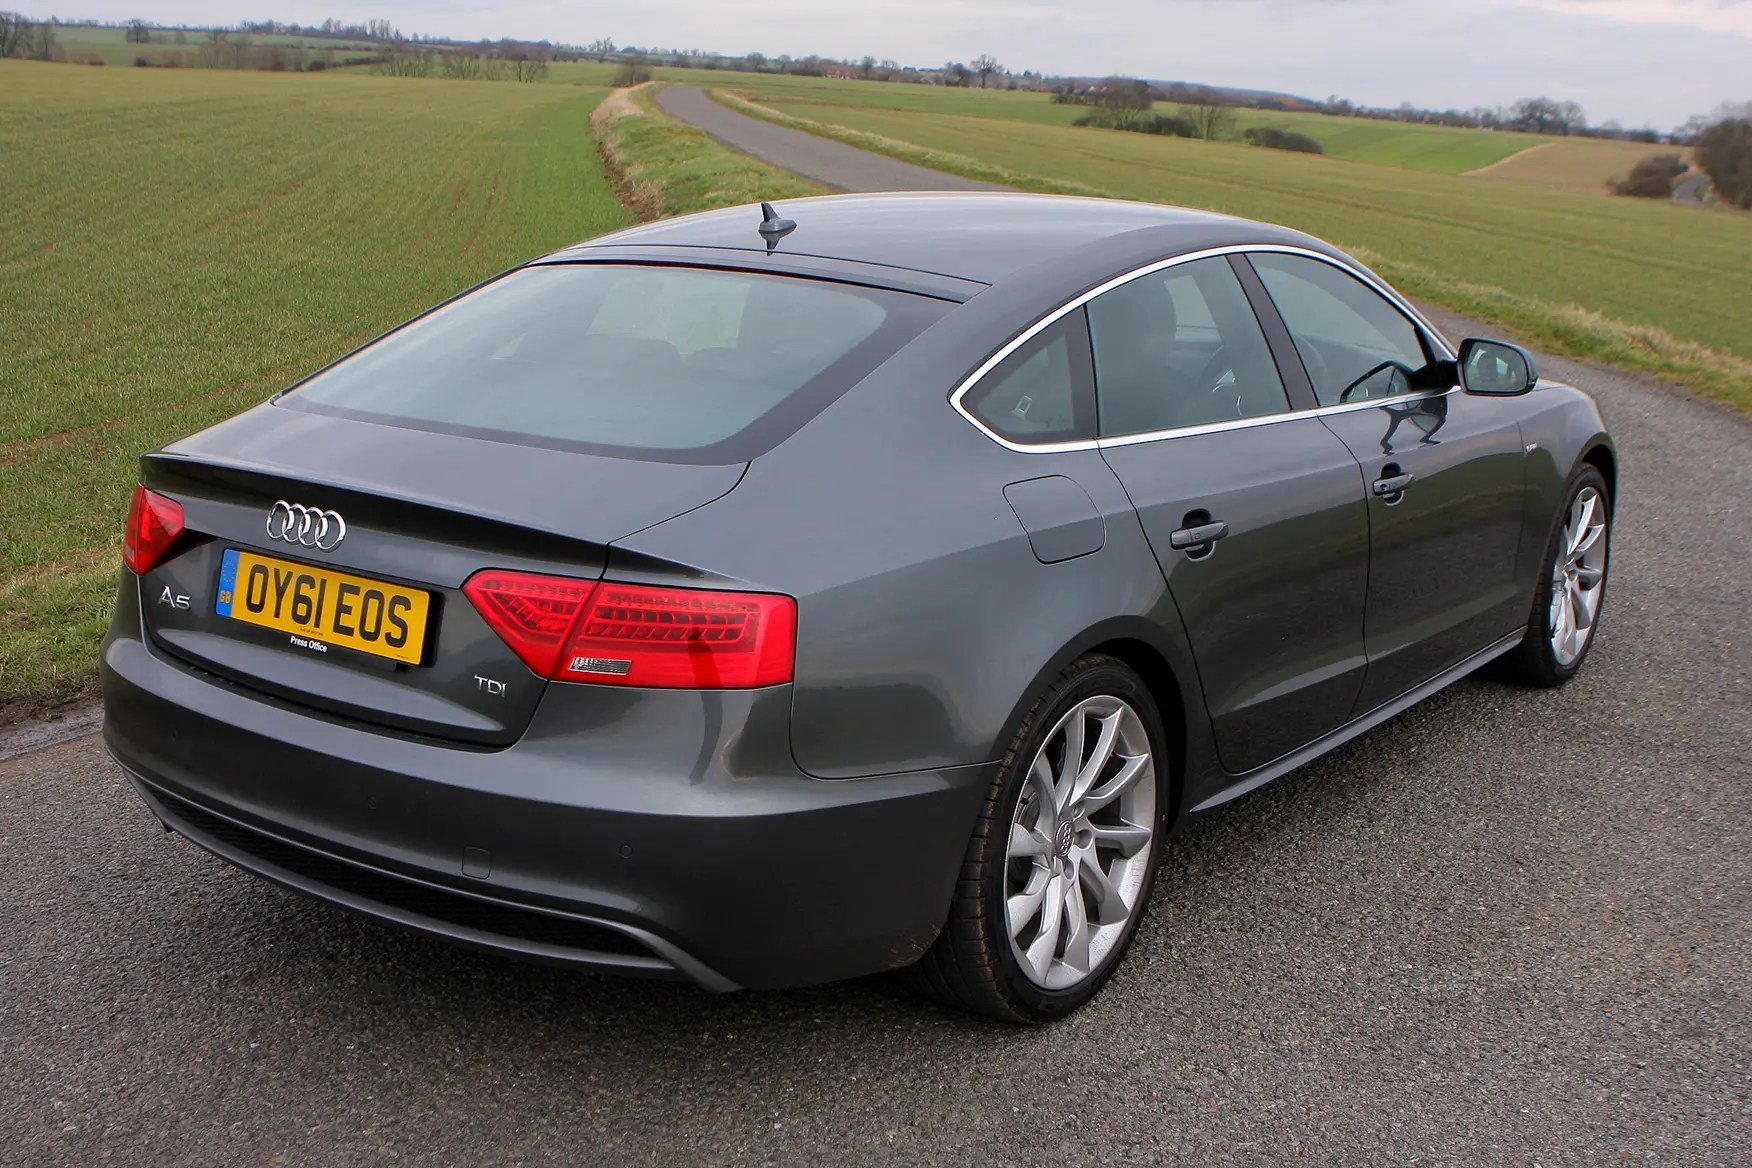 hight resolution of 2010 audi a5 black